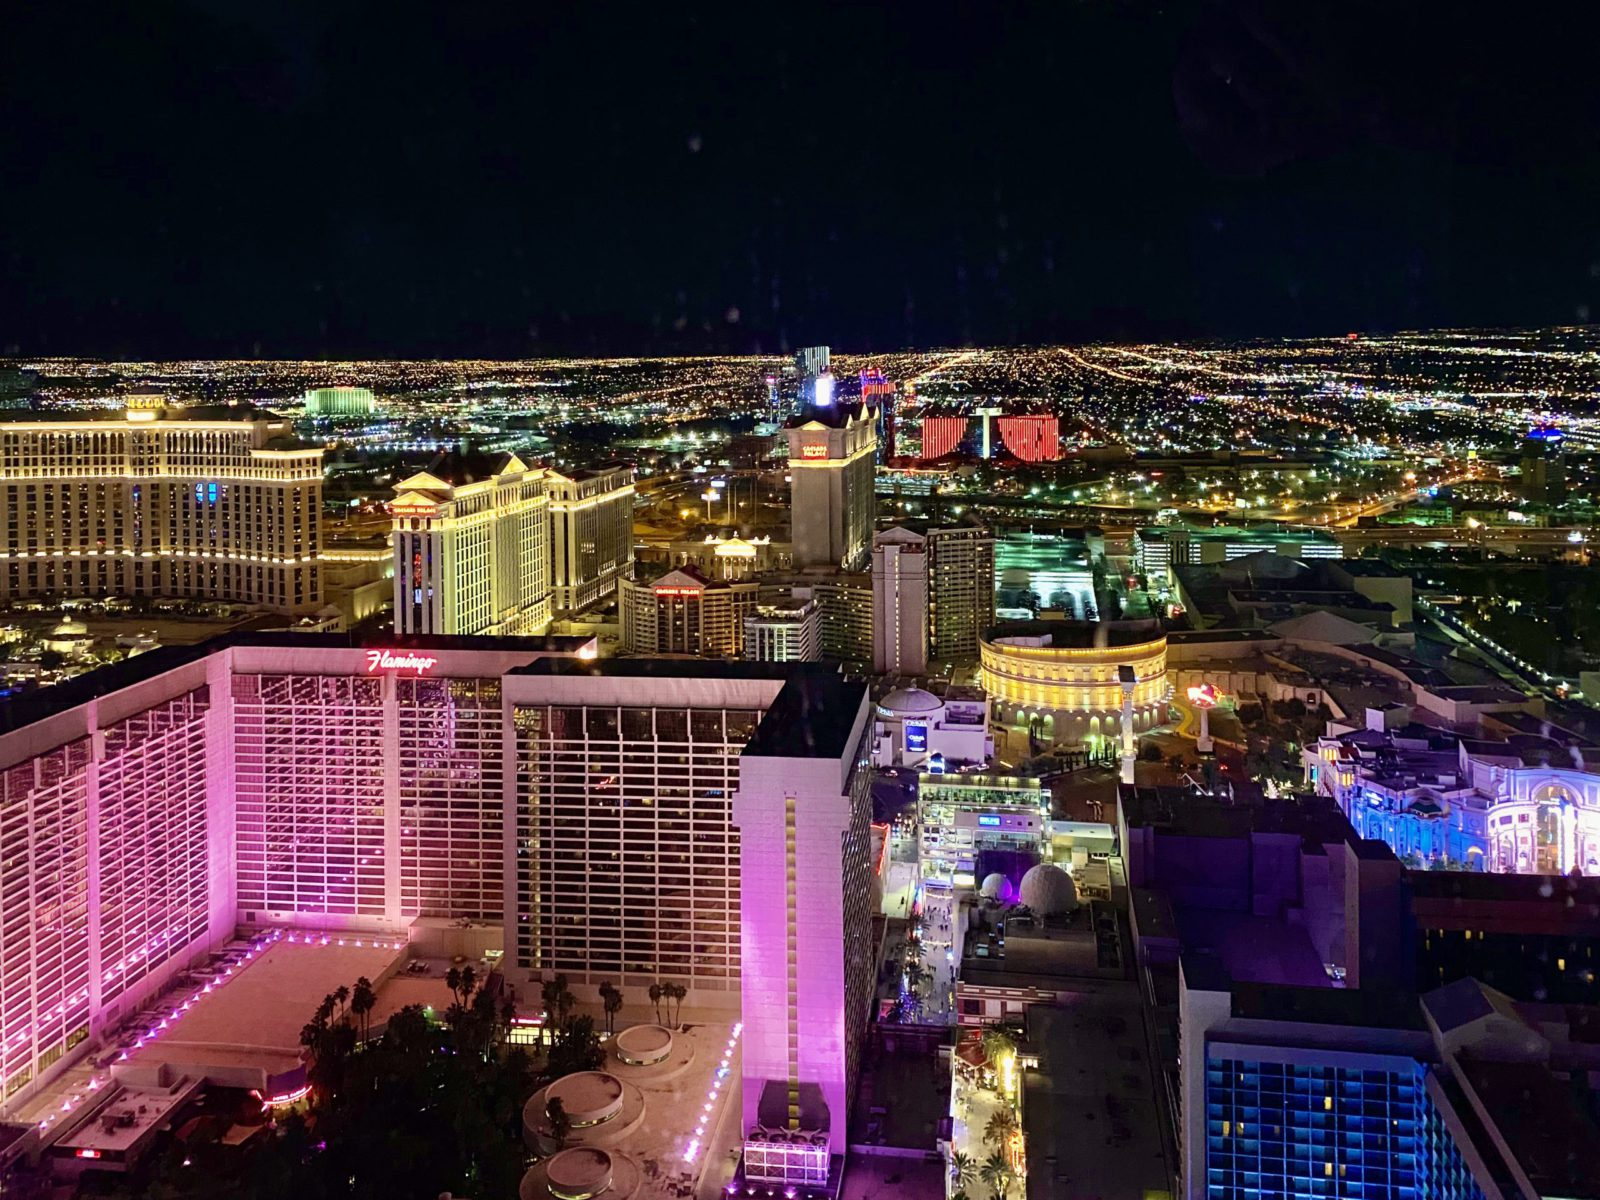 Flight Deal Round Trip From San Francisco Area to Las Vegas #sanfrancisco #lasvegas #1week